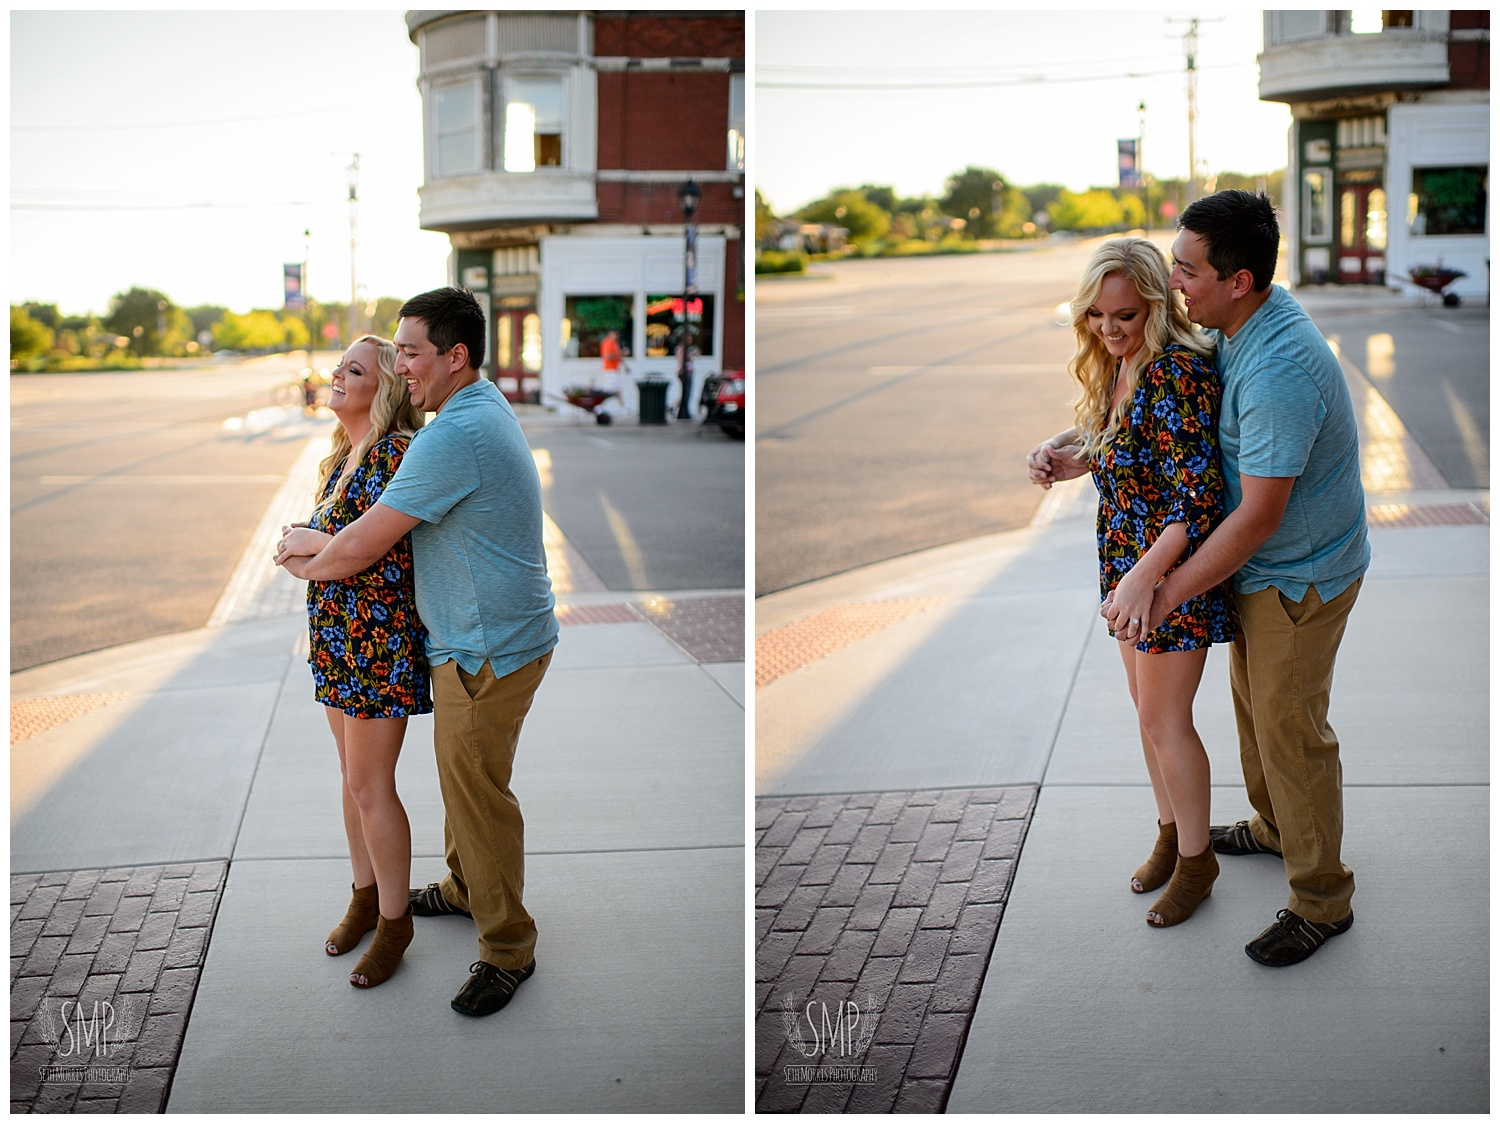 utica-engagement-photographer-downtown-pictures-27.jpg